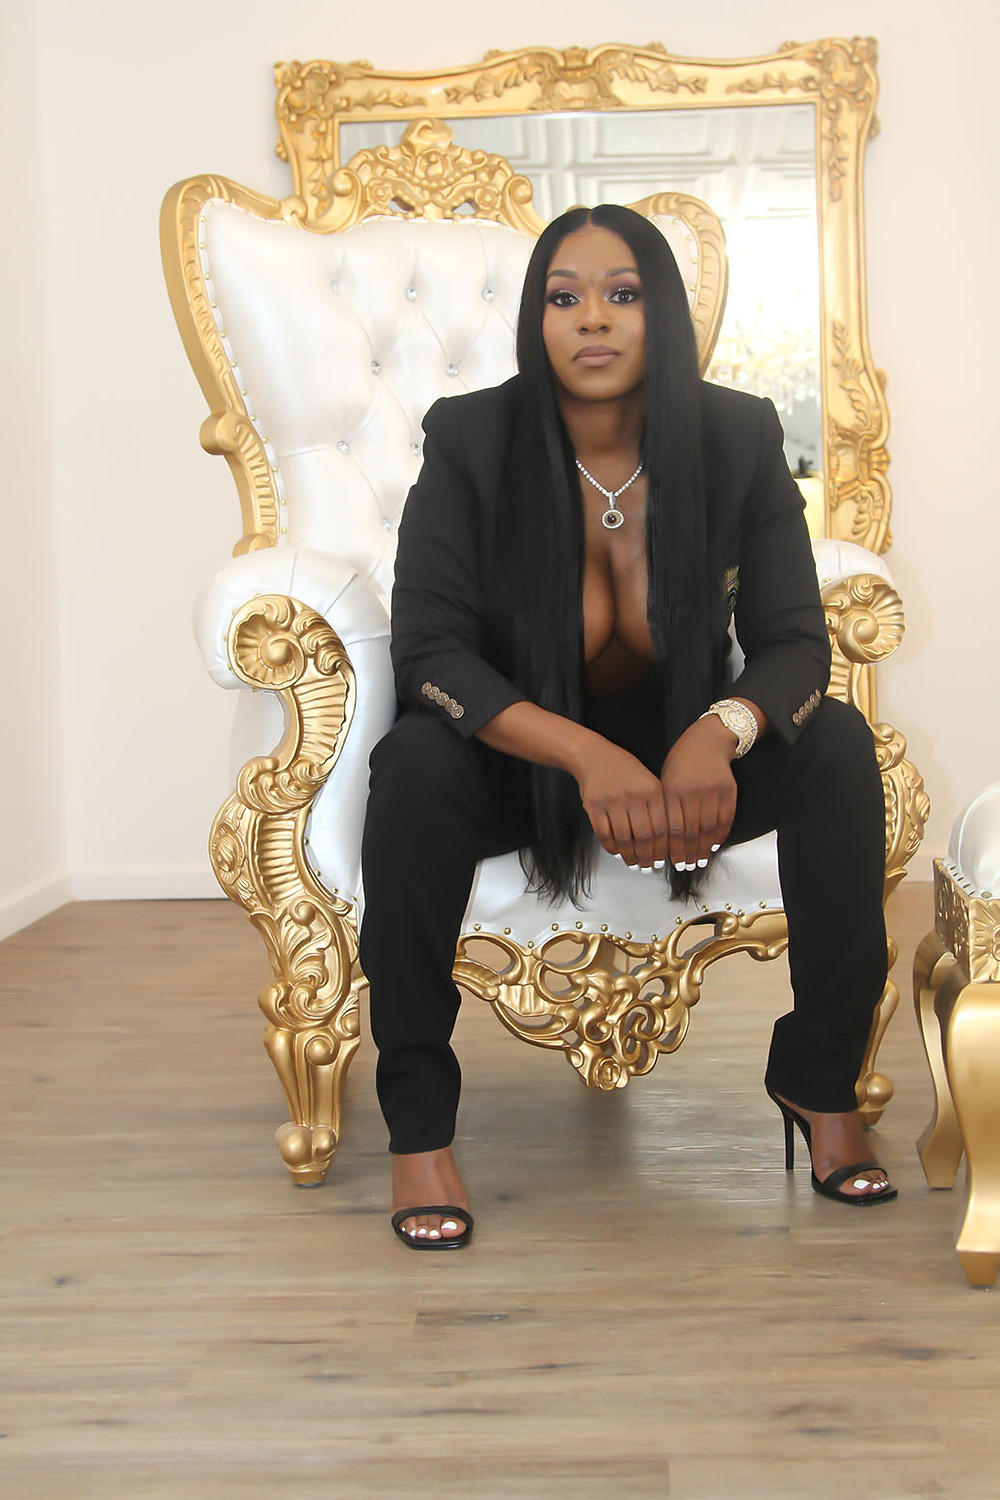 Michelle Smalls demonstrates how sitting the edge of your seat makes you look strong and confident.